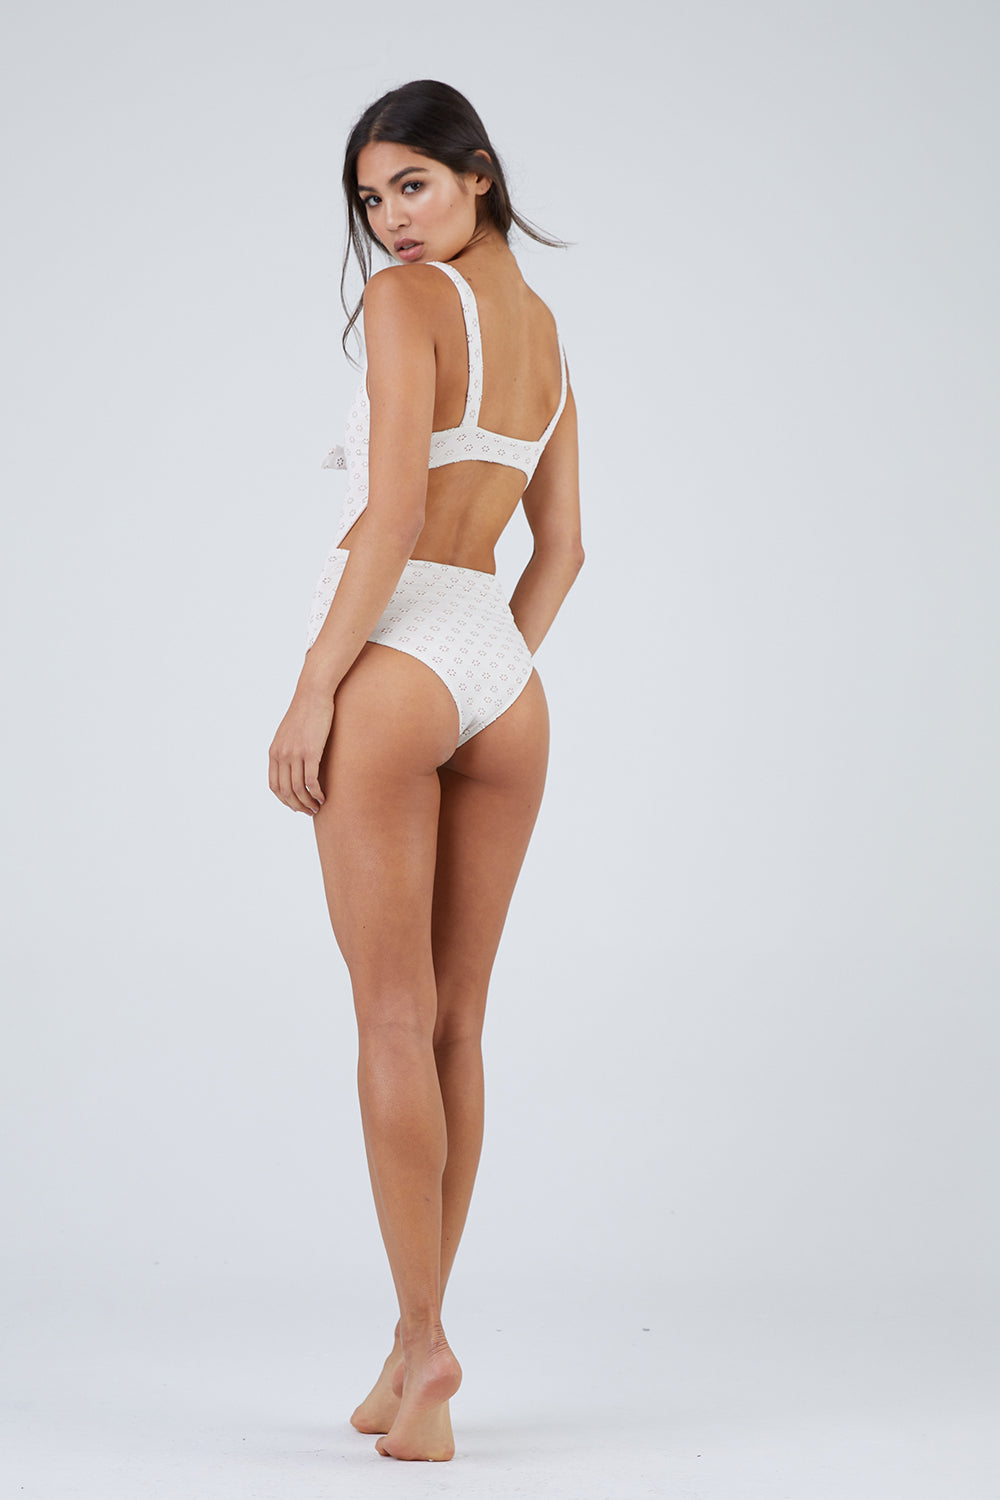 bc4f2c499d8 ... AMUSE SOCIETY Gwen Eyelet Front Tie Cut Out One Piece Swimsuit - Pebble  White - undefined